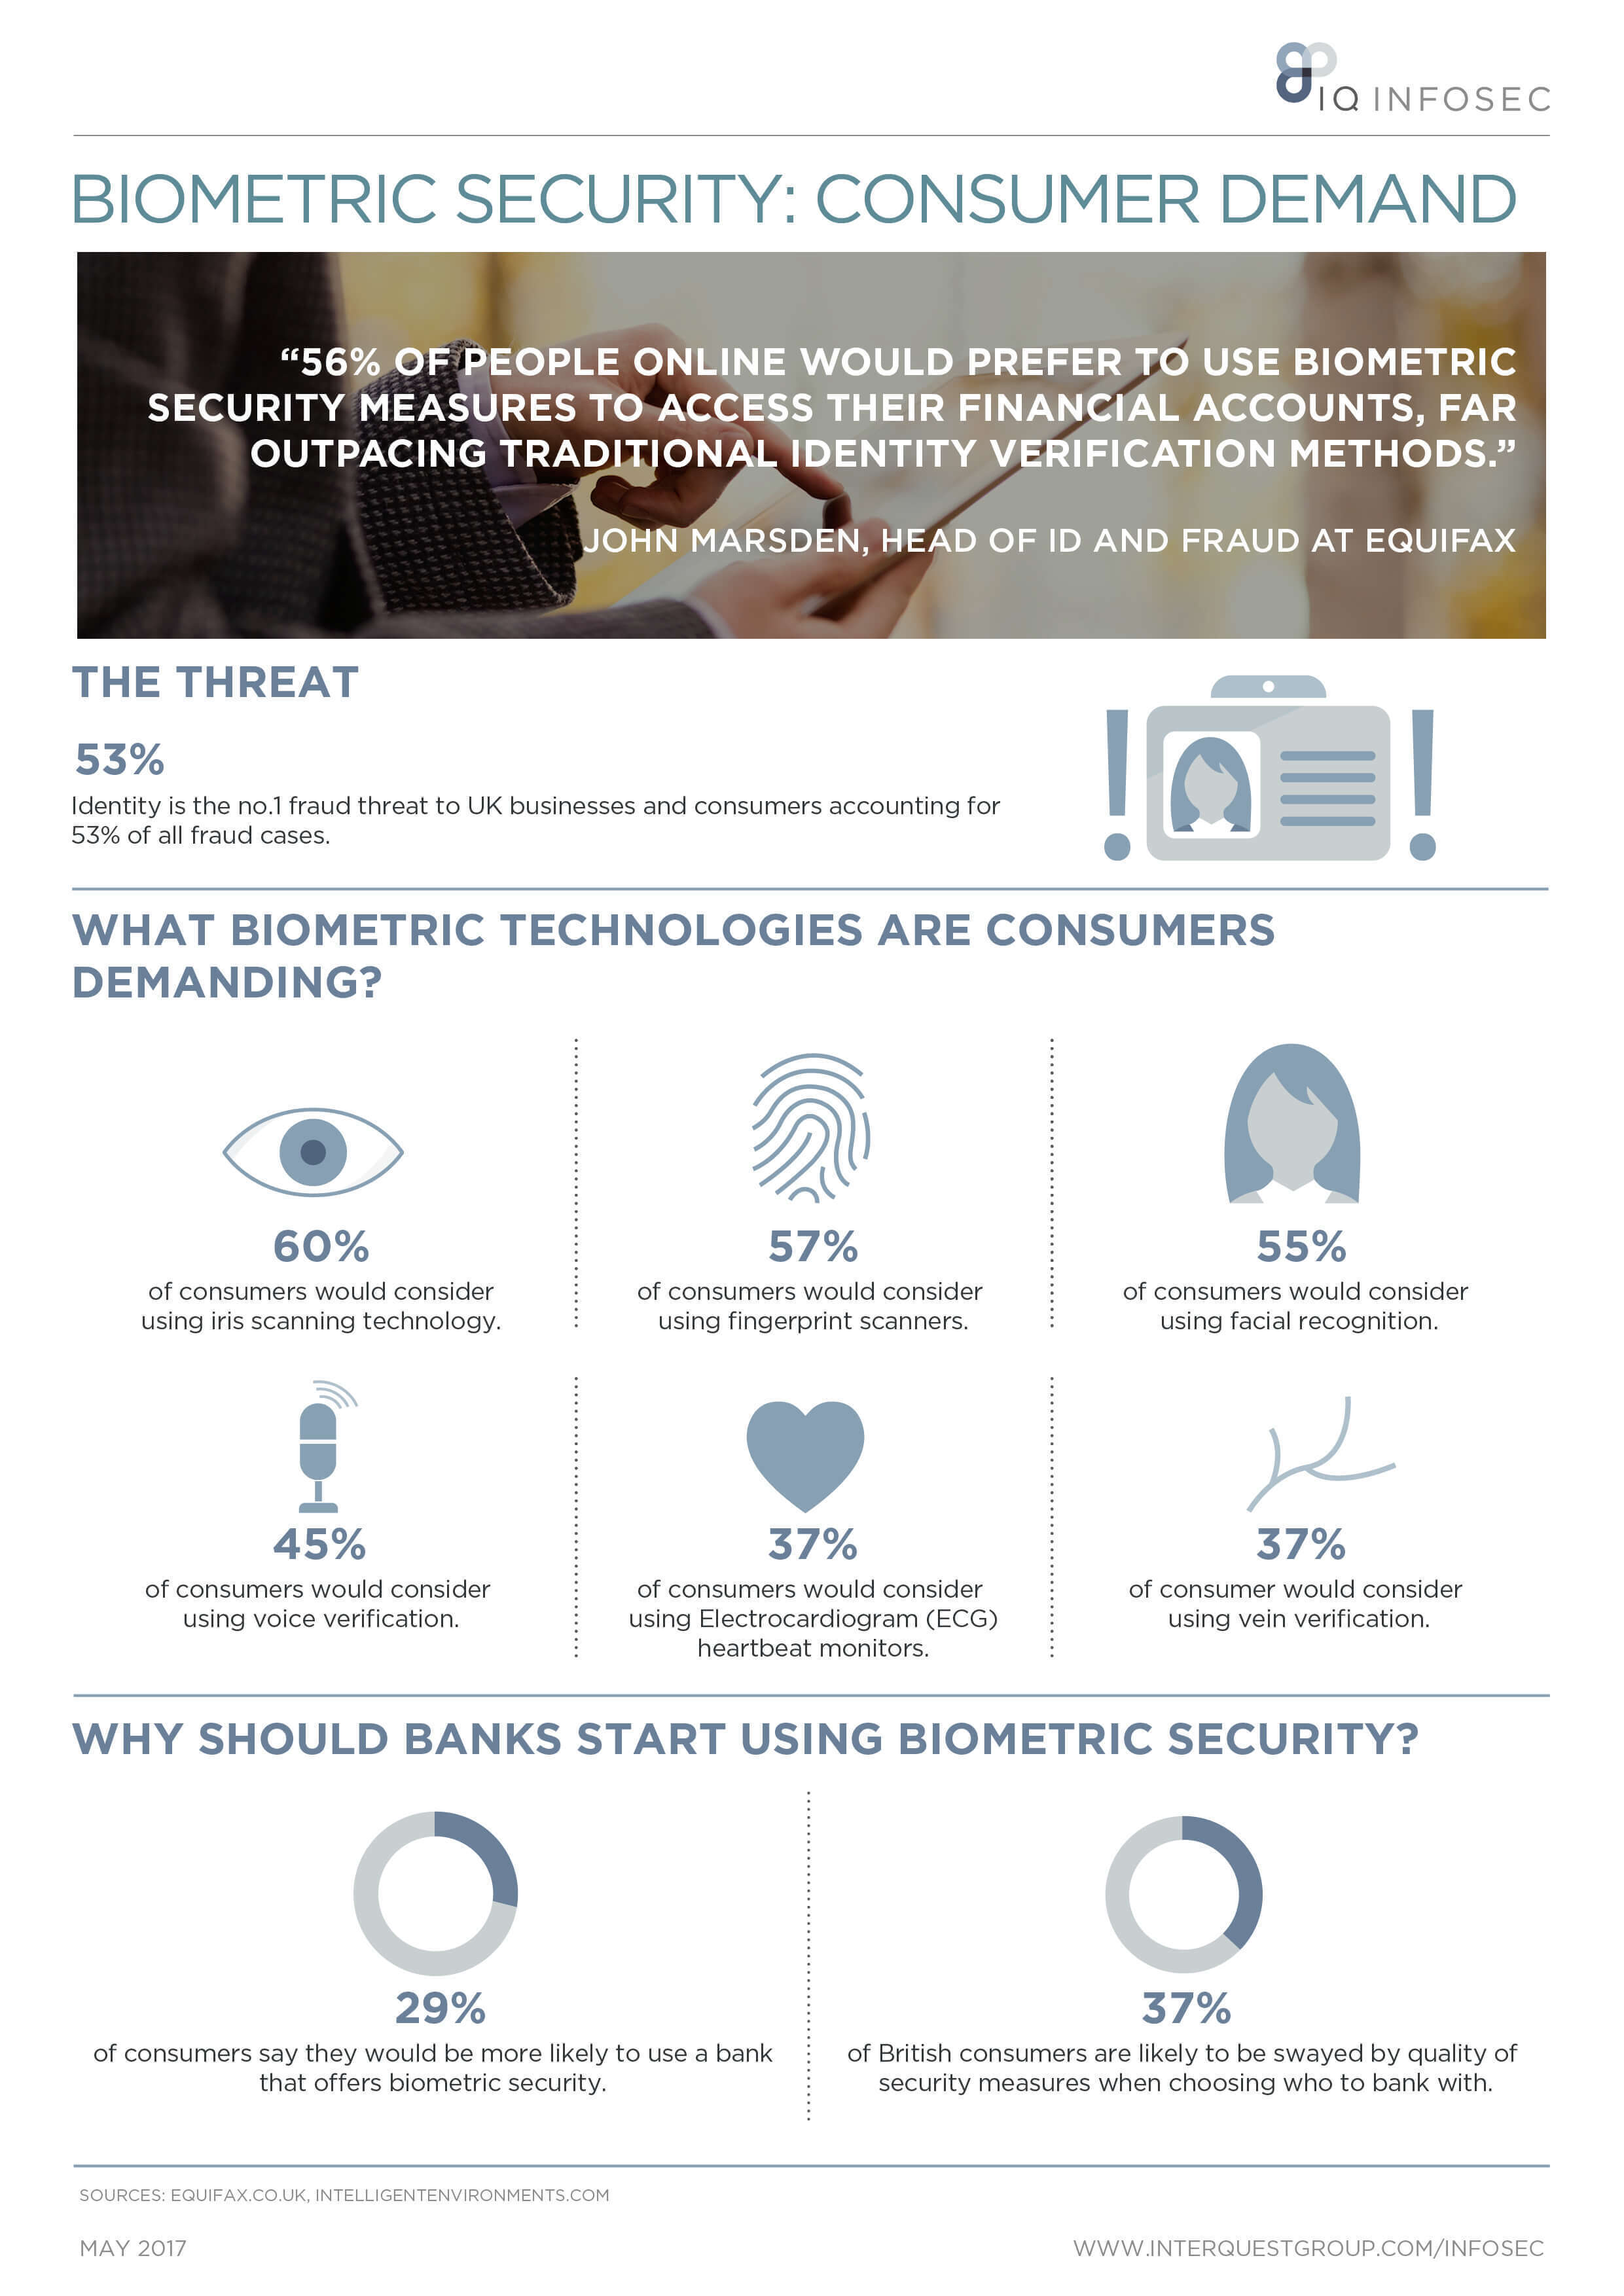 Biometric Security Consumer Demand Infographic